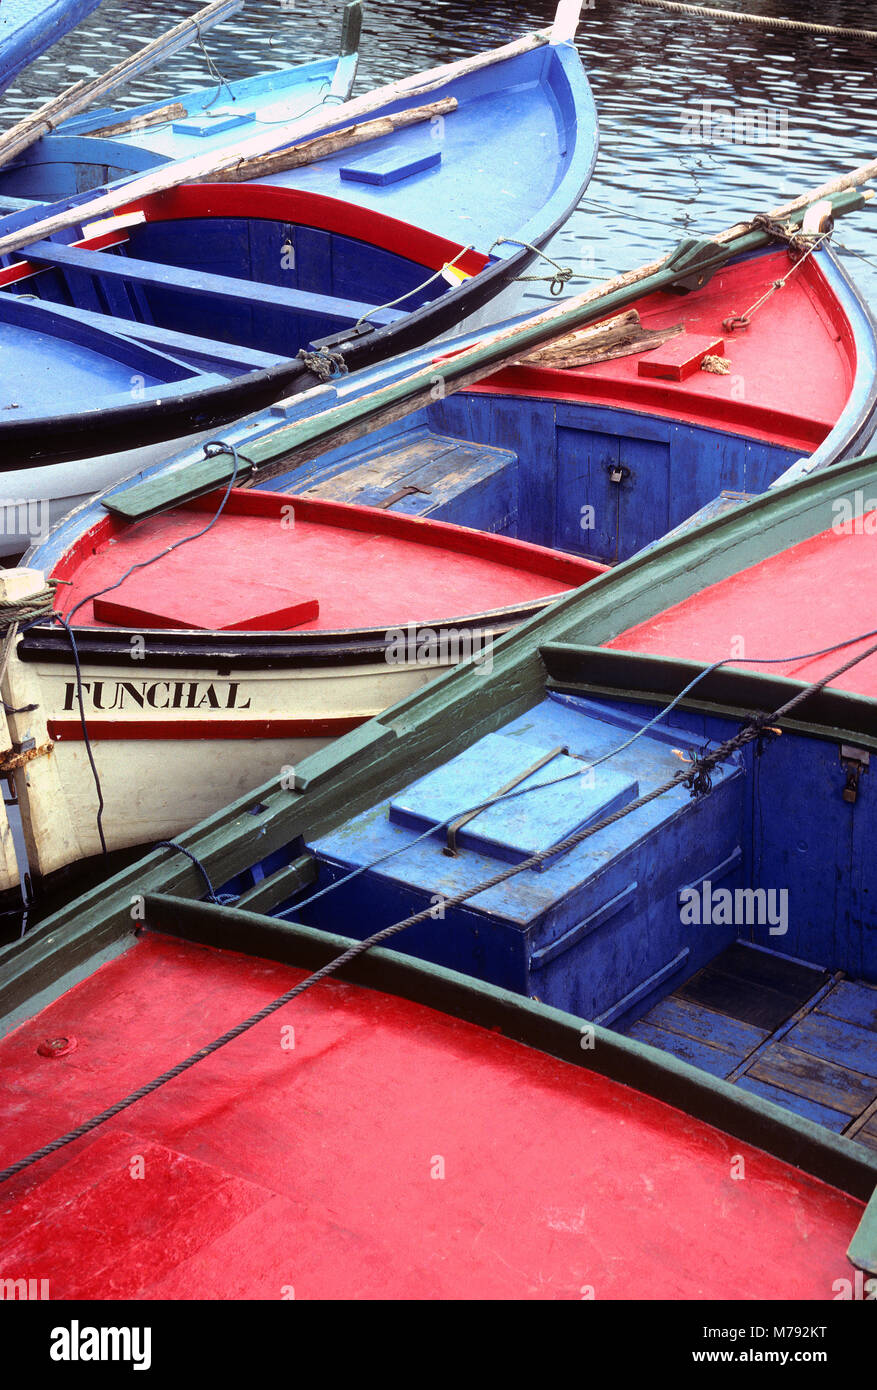 Fishing boats at the ready in Camara de Lobos on the Island of Madeira, Portugal - Stock Image